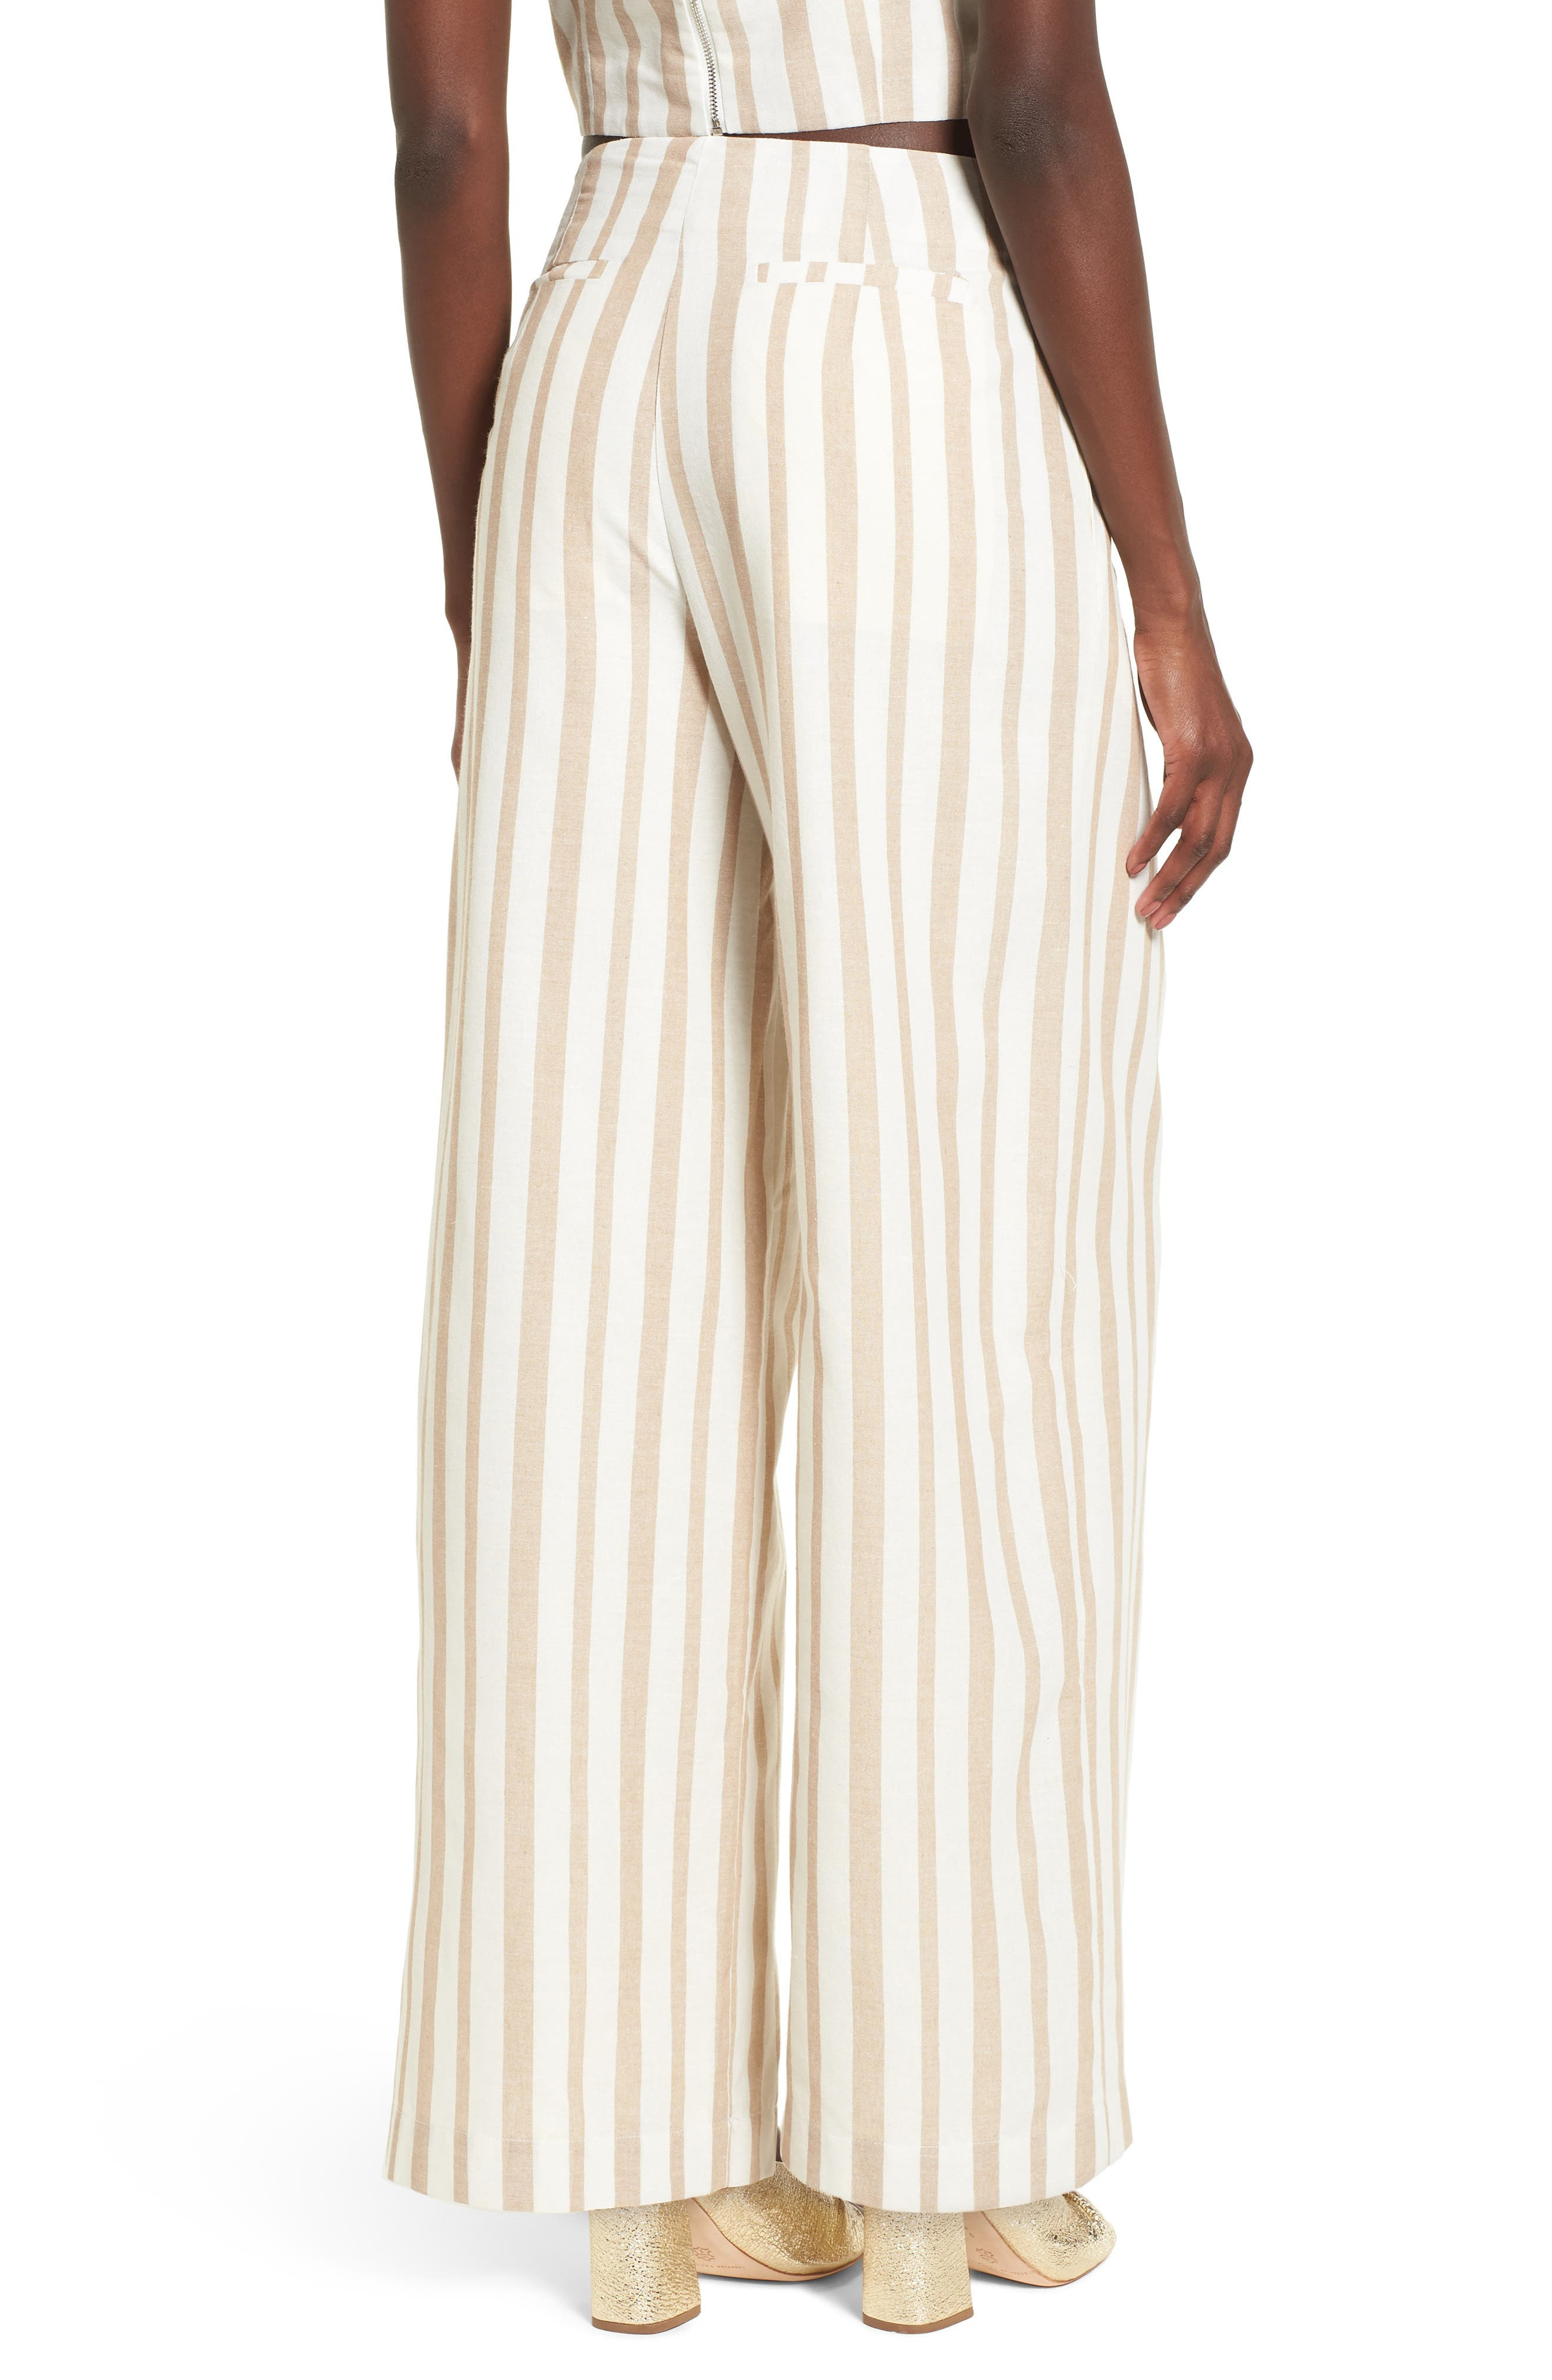 Chriselle x J.O.A. Lace-Up High Waist Wide Leg Pants,                             Alternate thumbnail 2, color,                             250